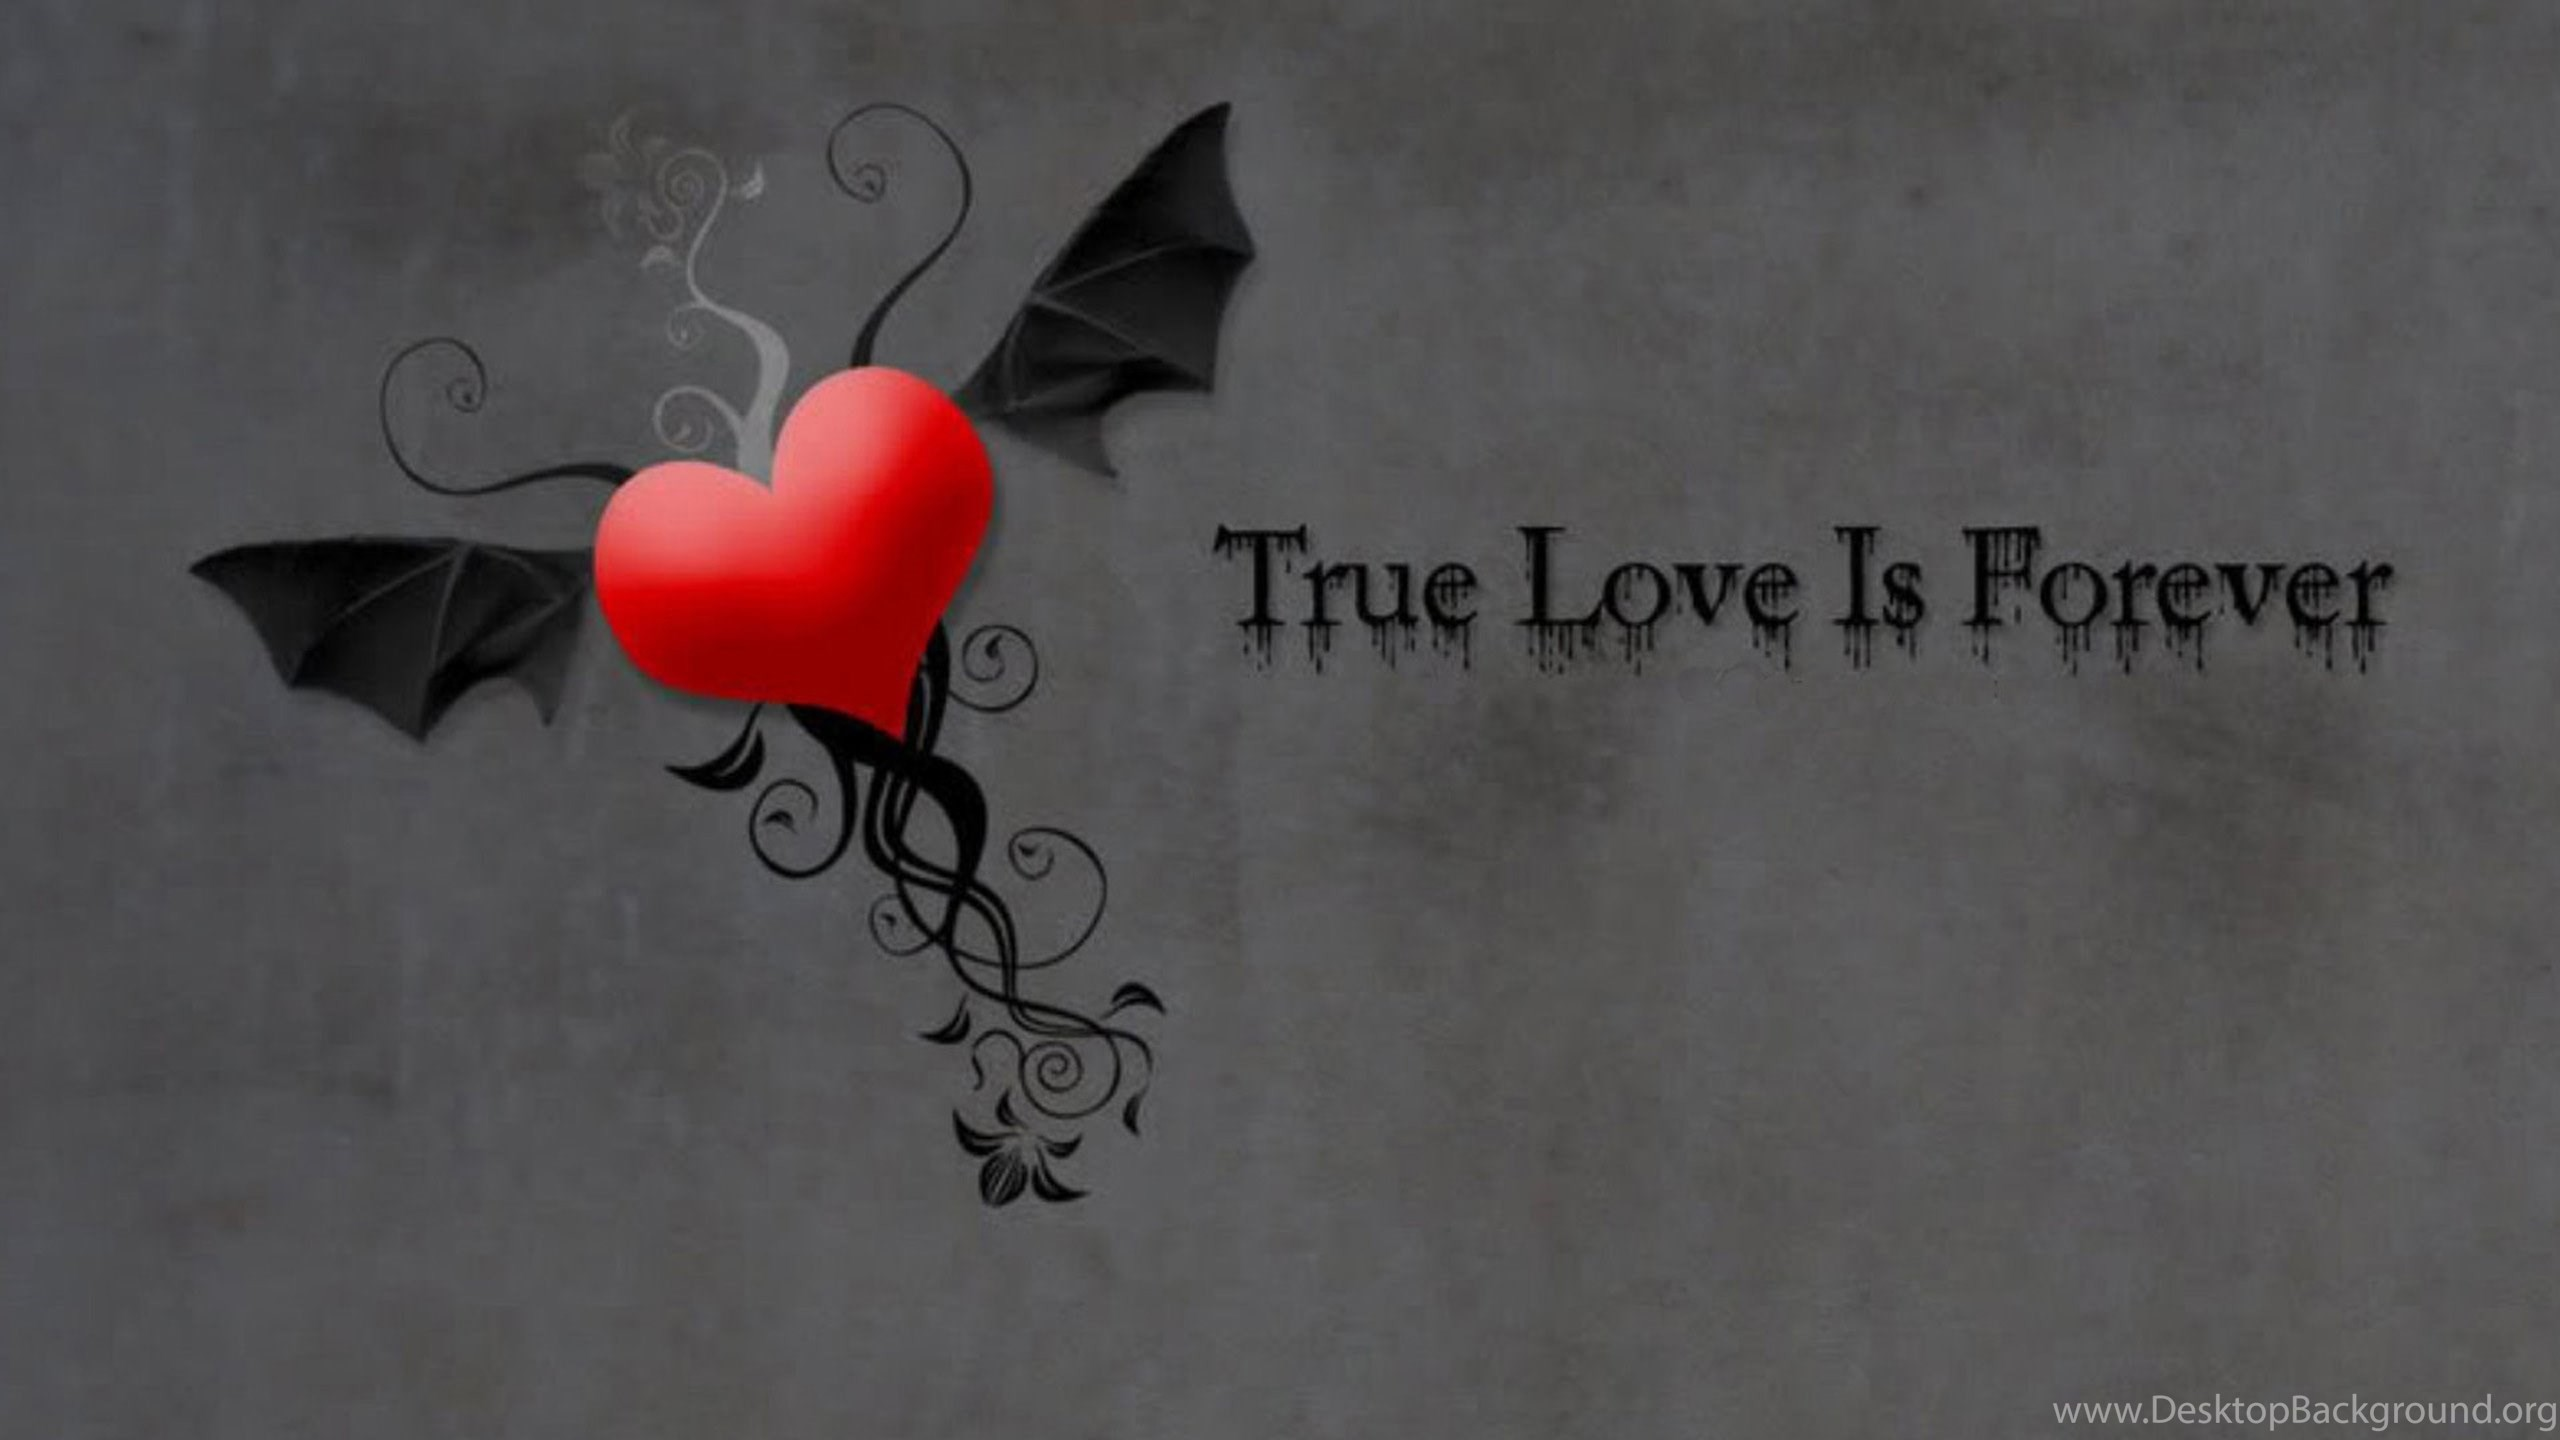 True Love Desktop Wallpaper : True Love Wallpaper (58+ images)